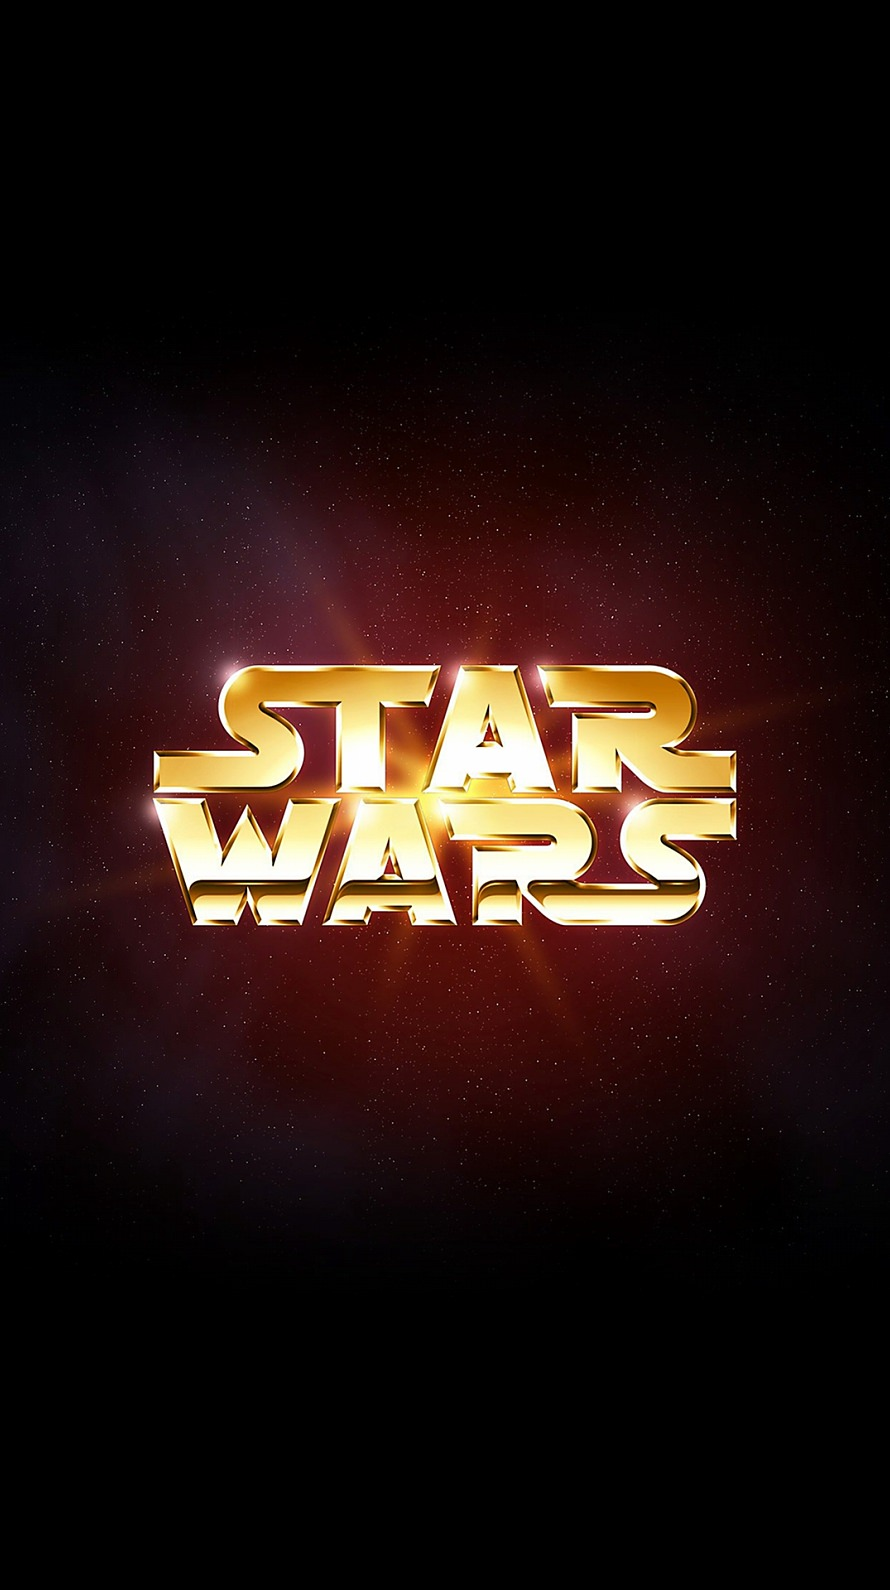 STAR WARS LOGO iPhone6壁紙